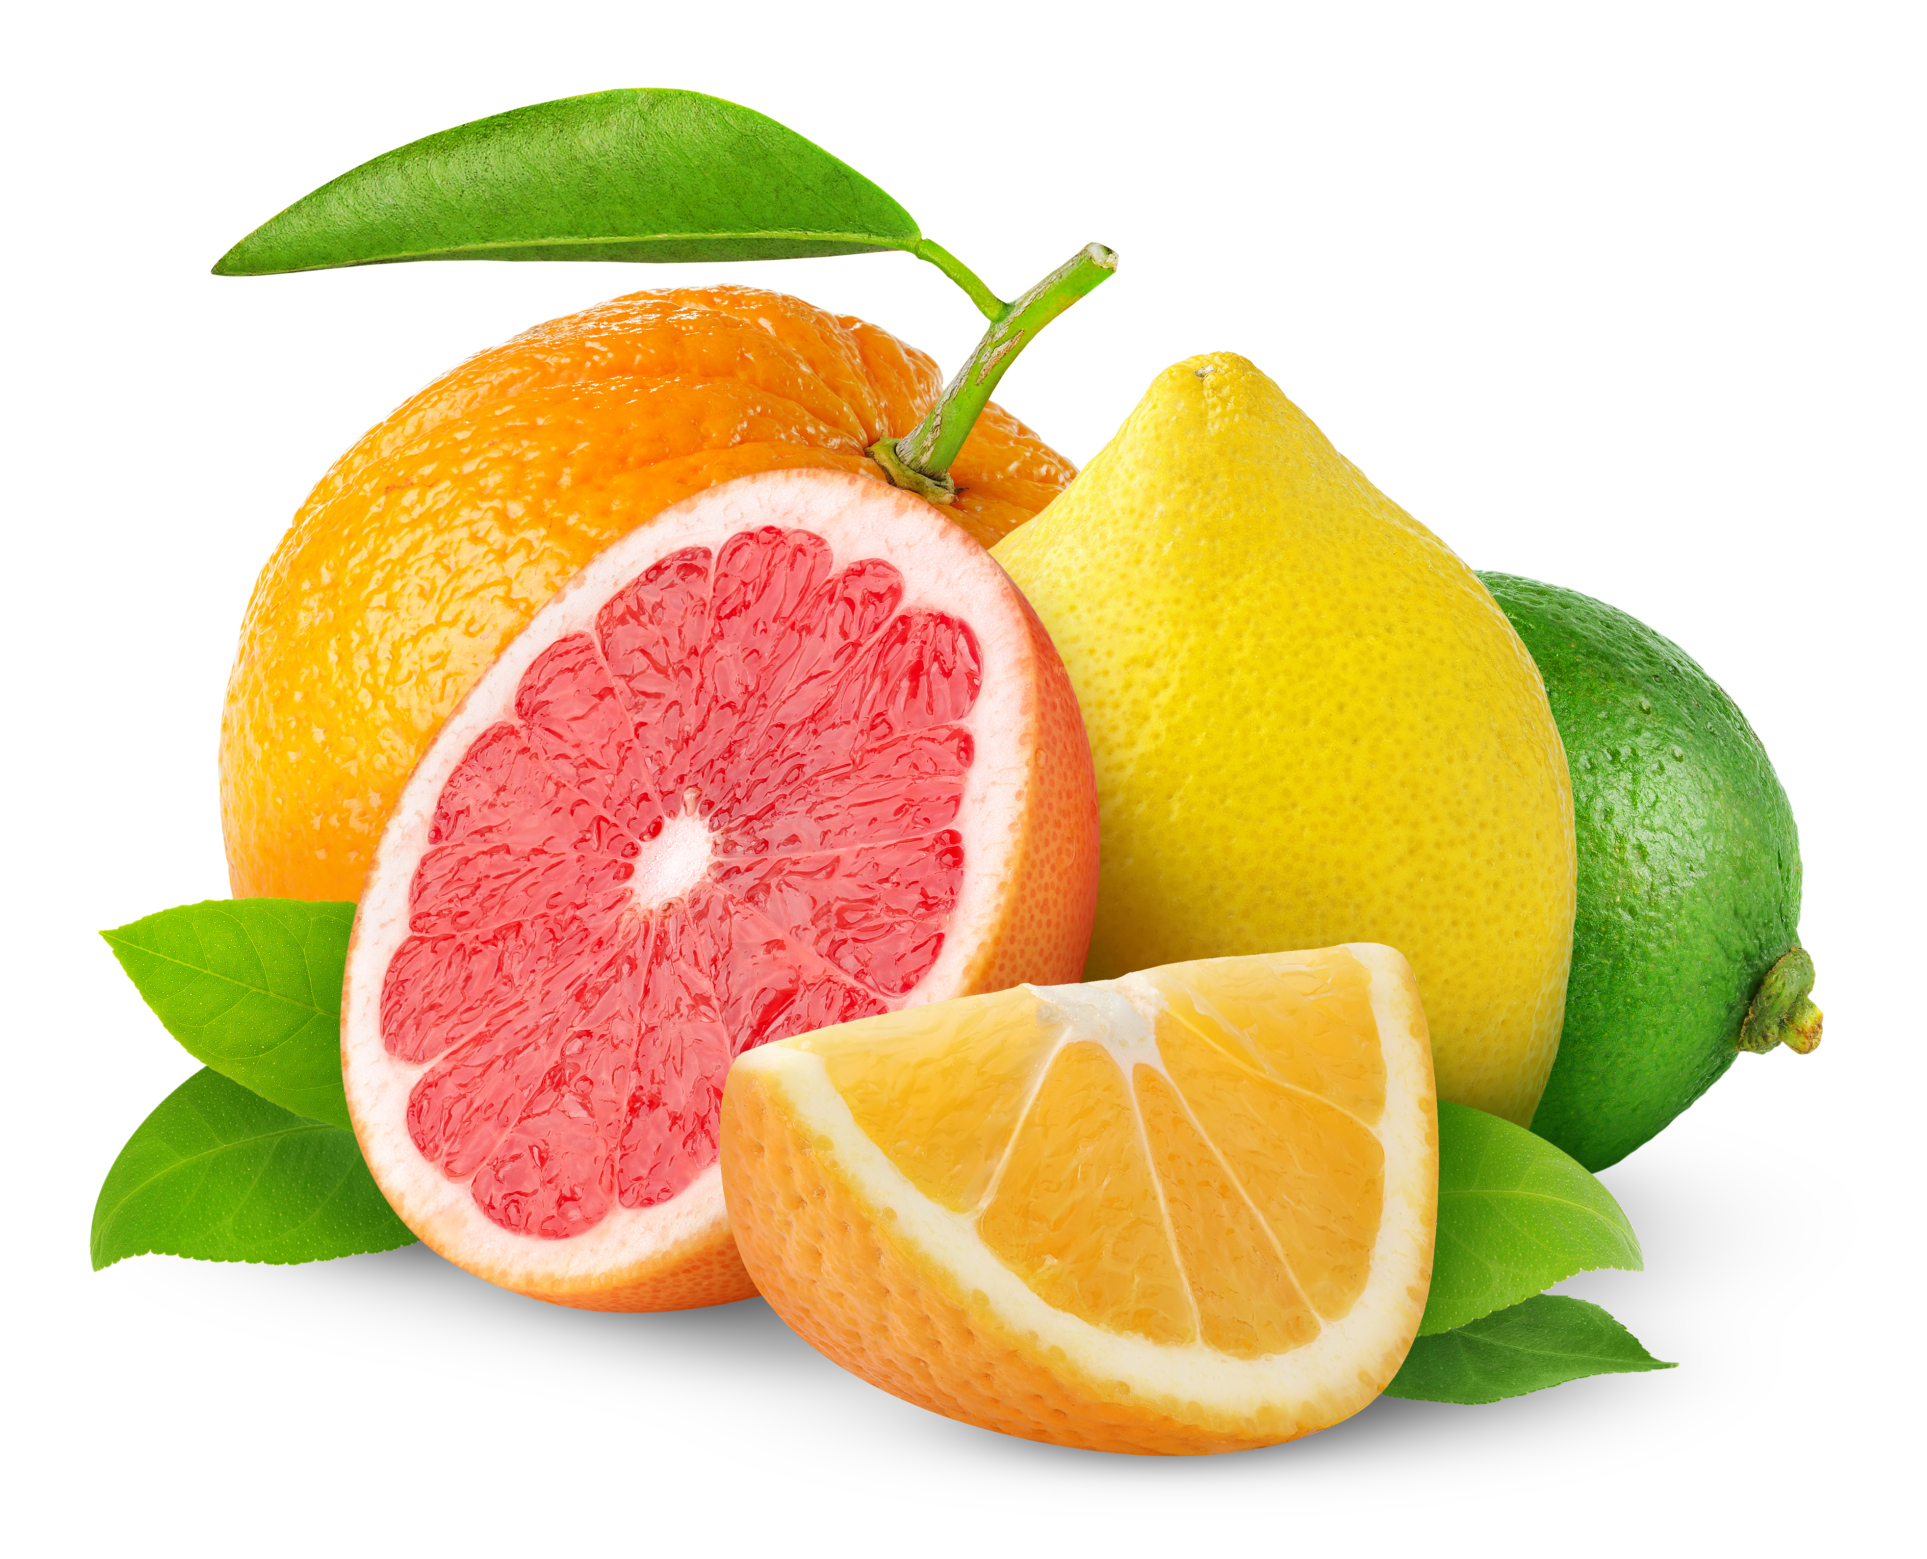 Diabetes escape plan - Citrus fruits